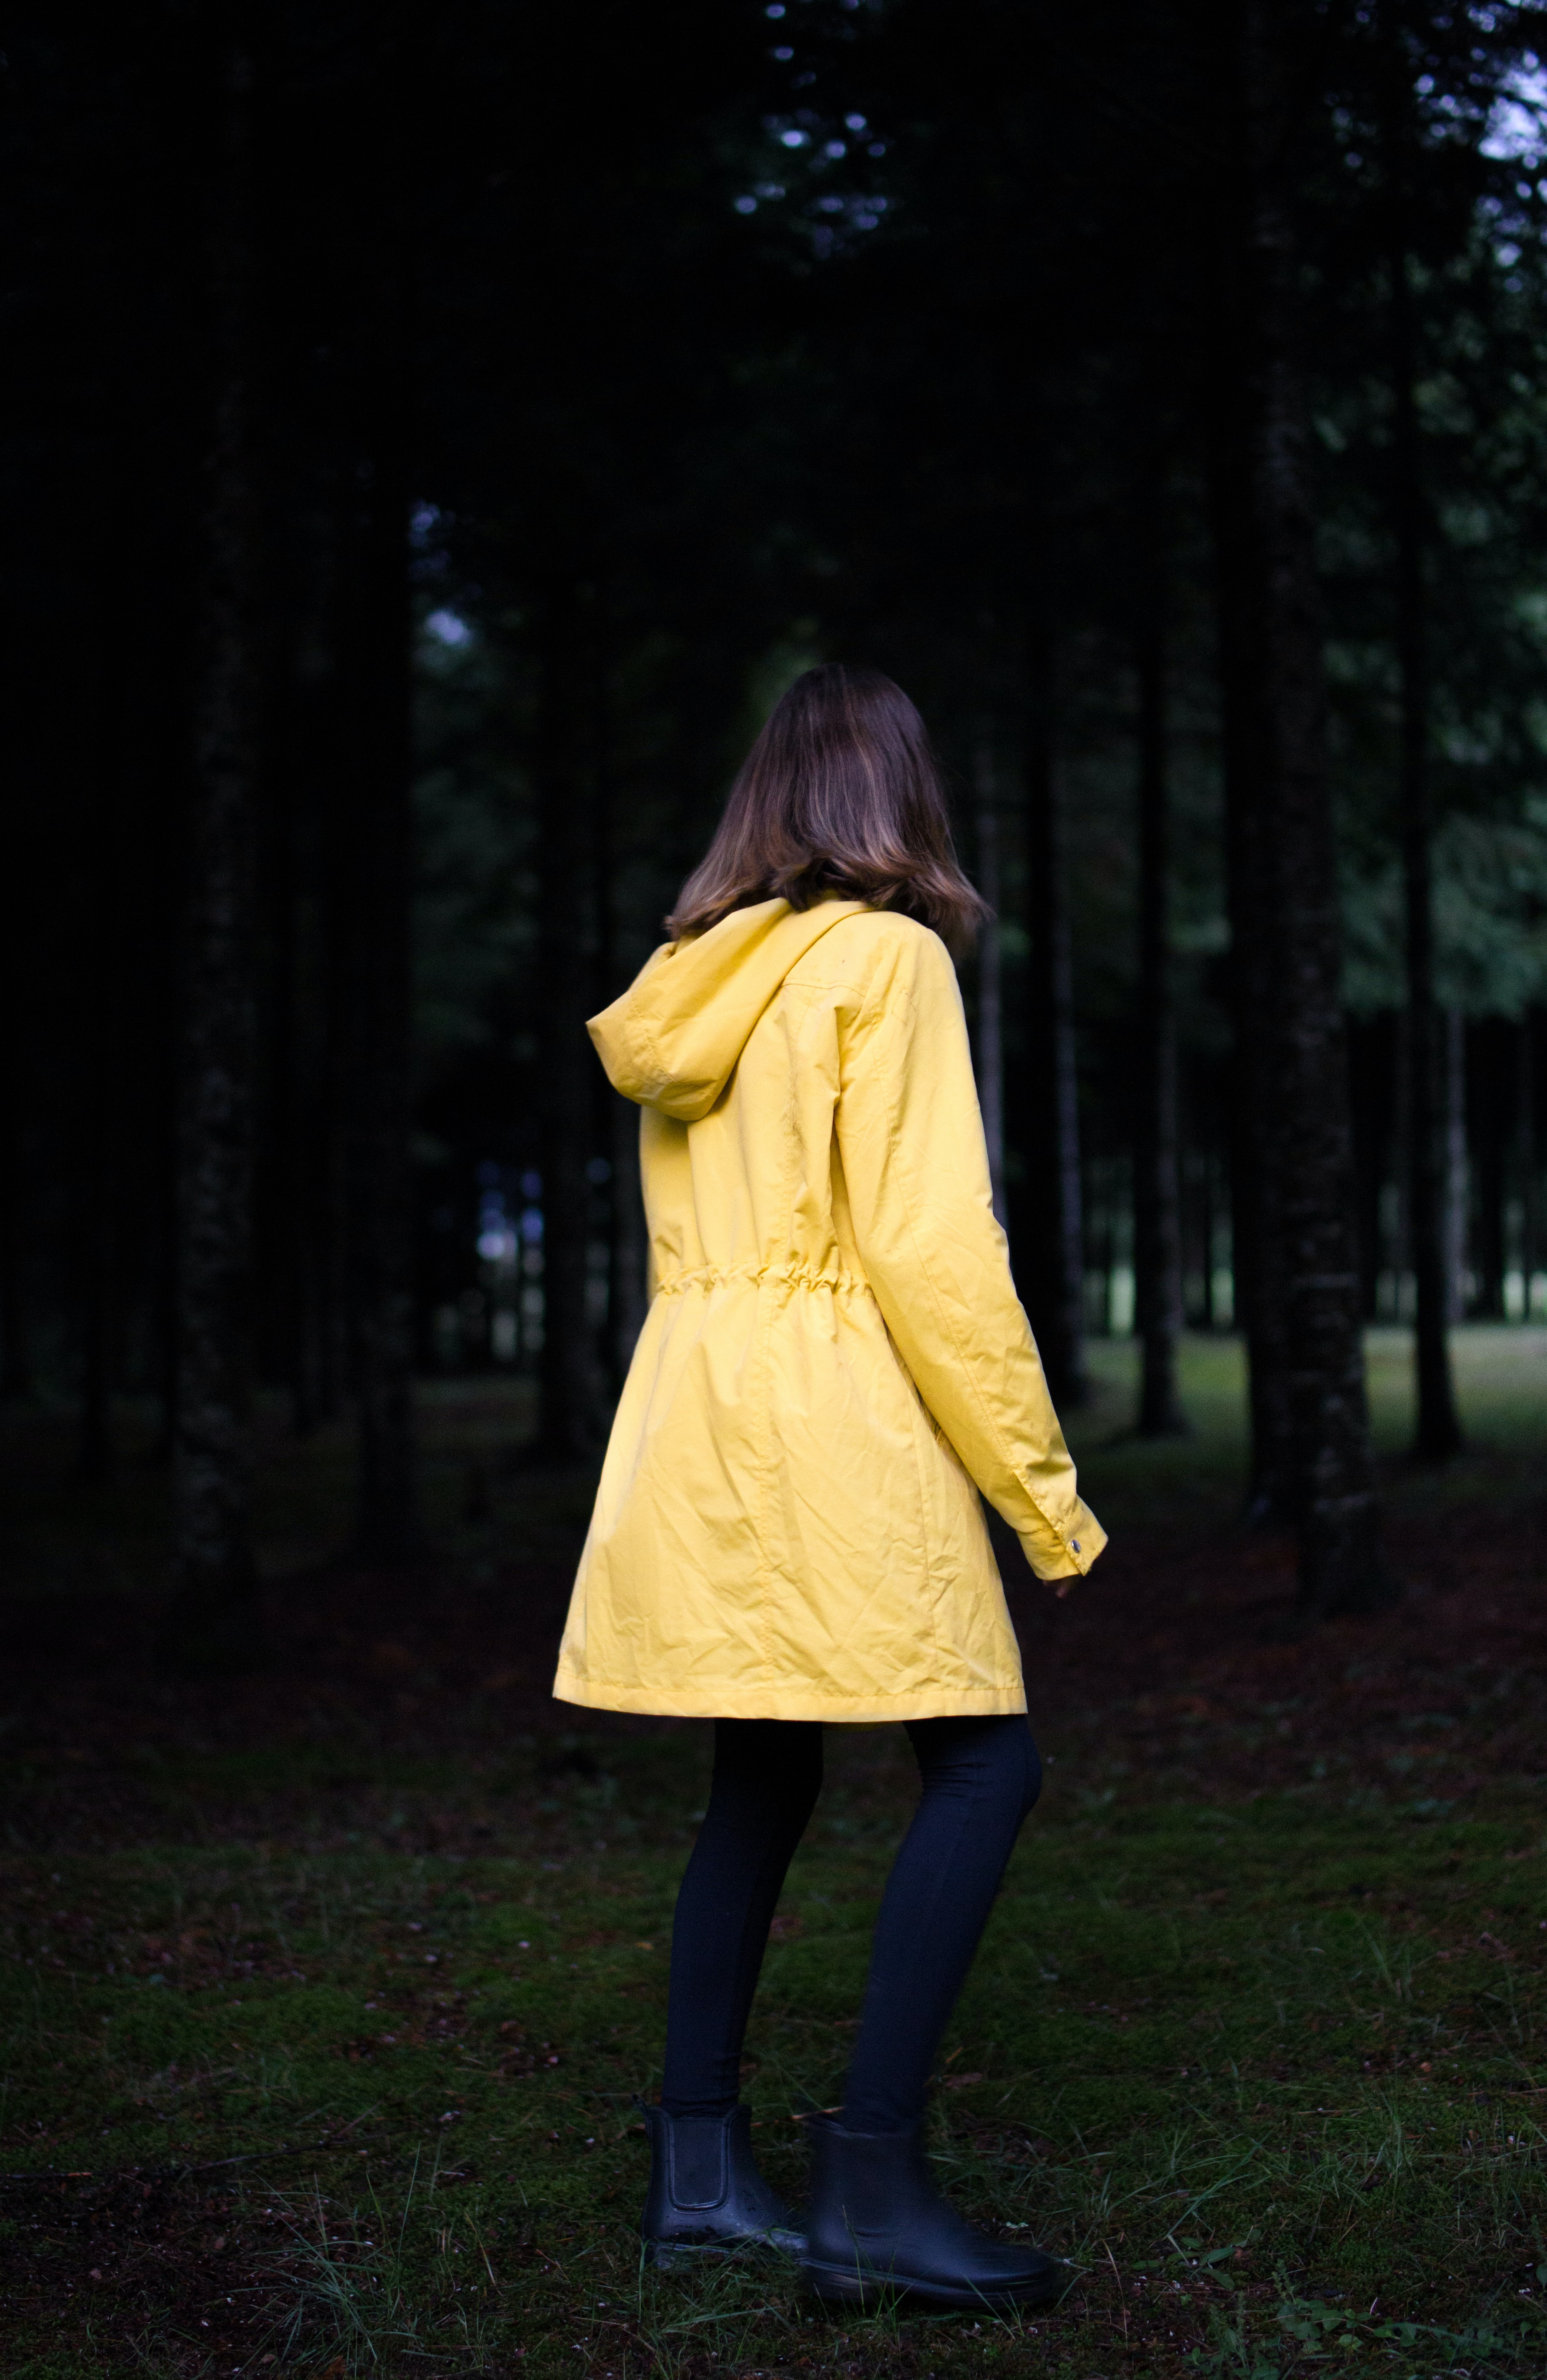 woman standing near green leafed trees